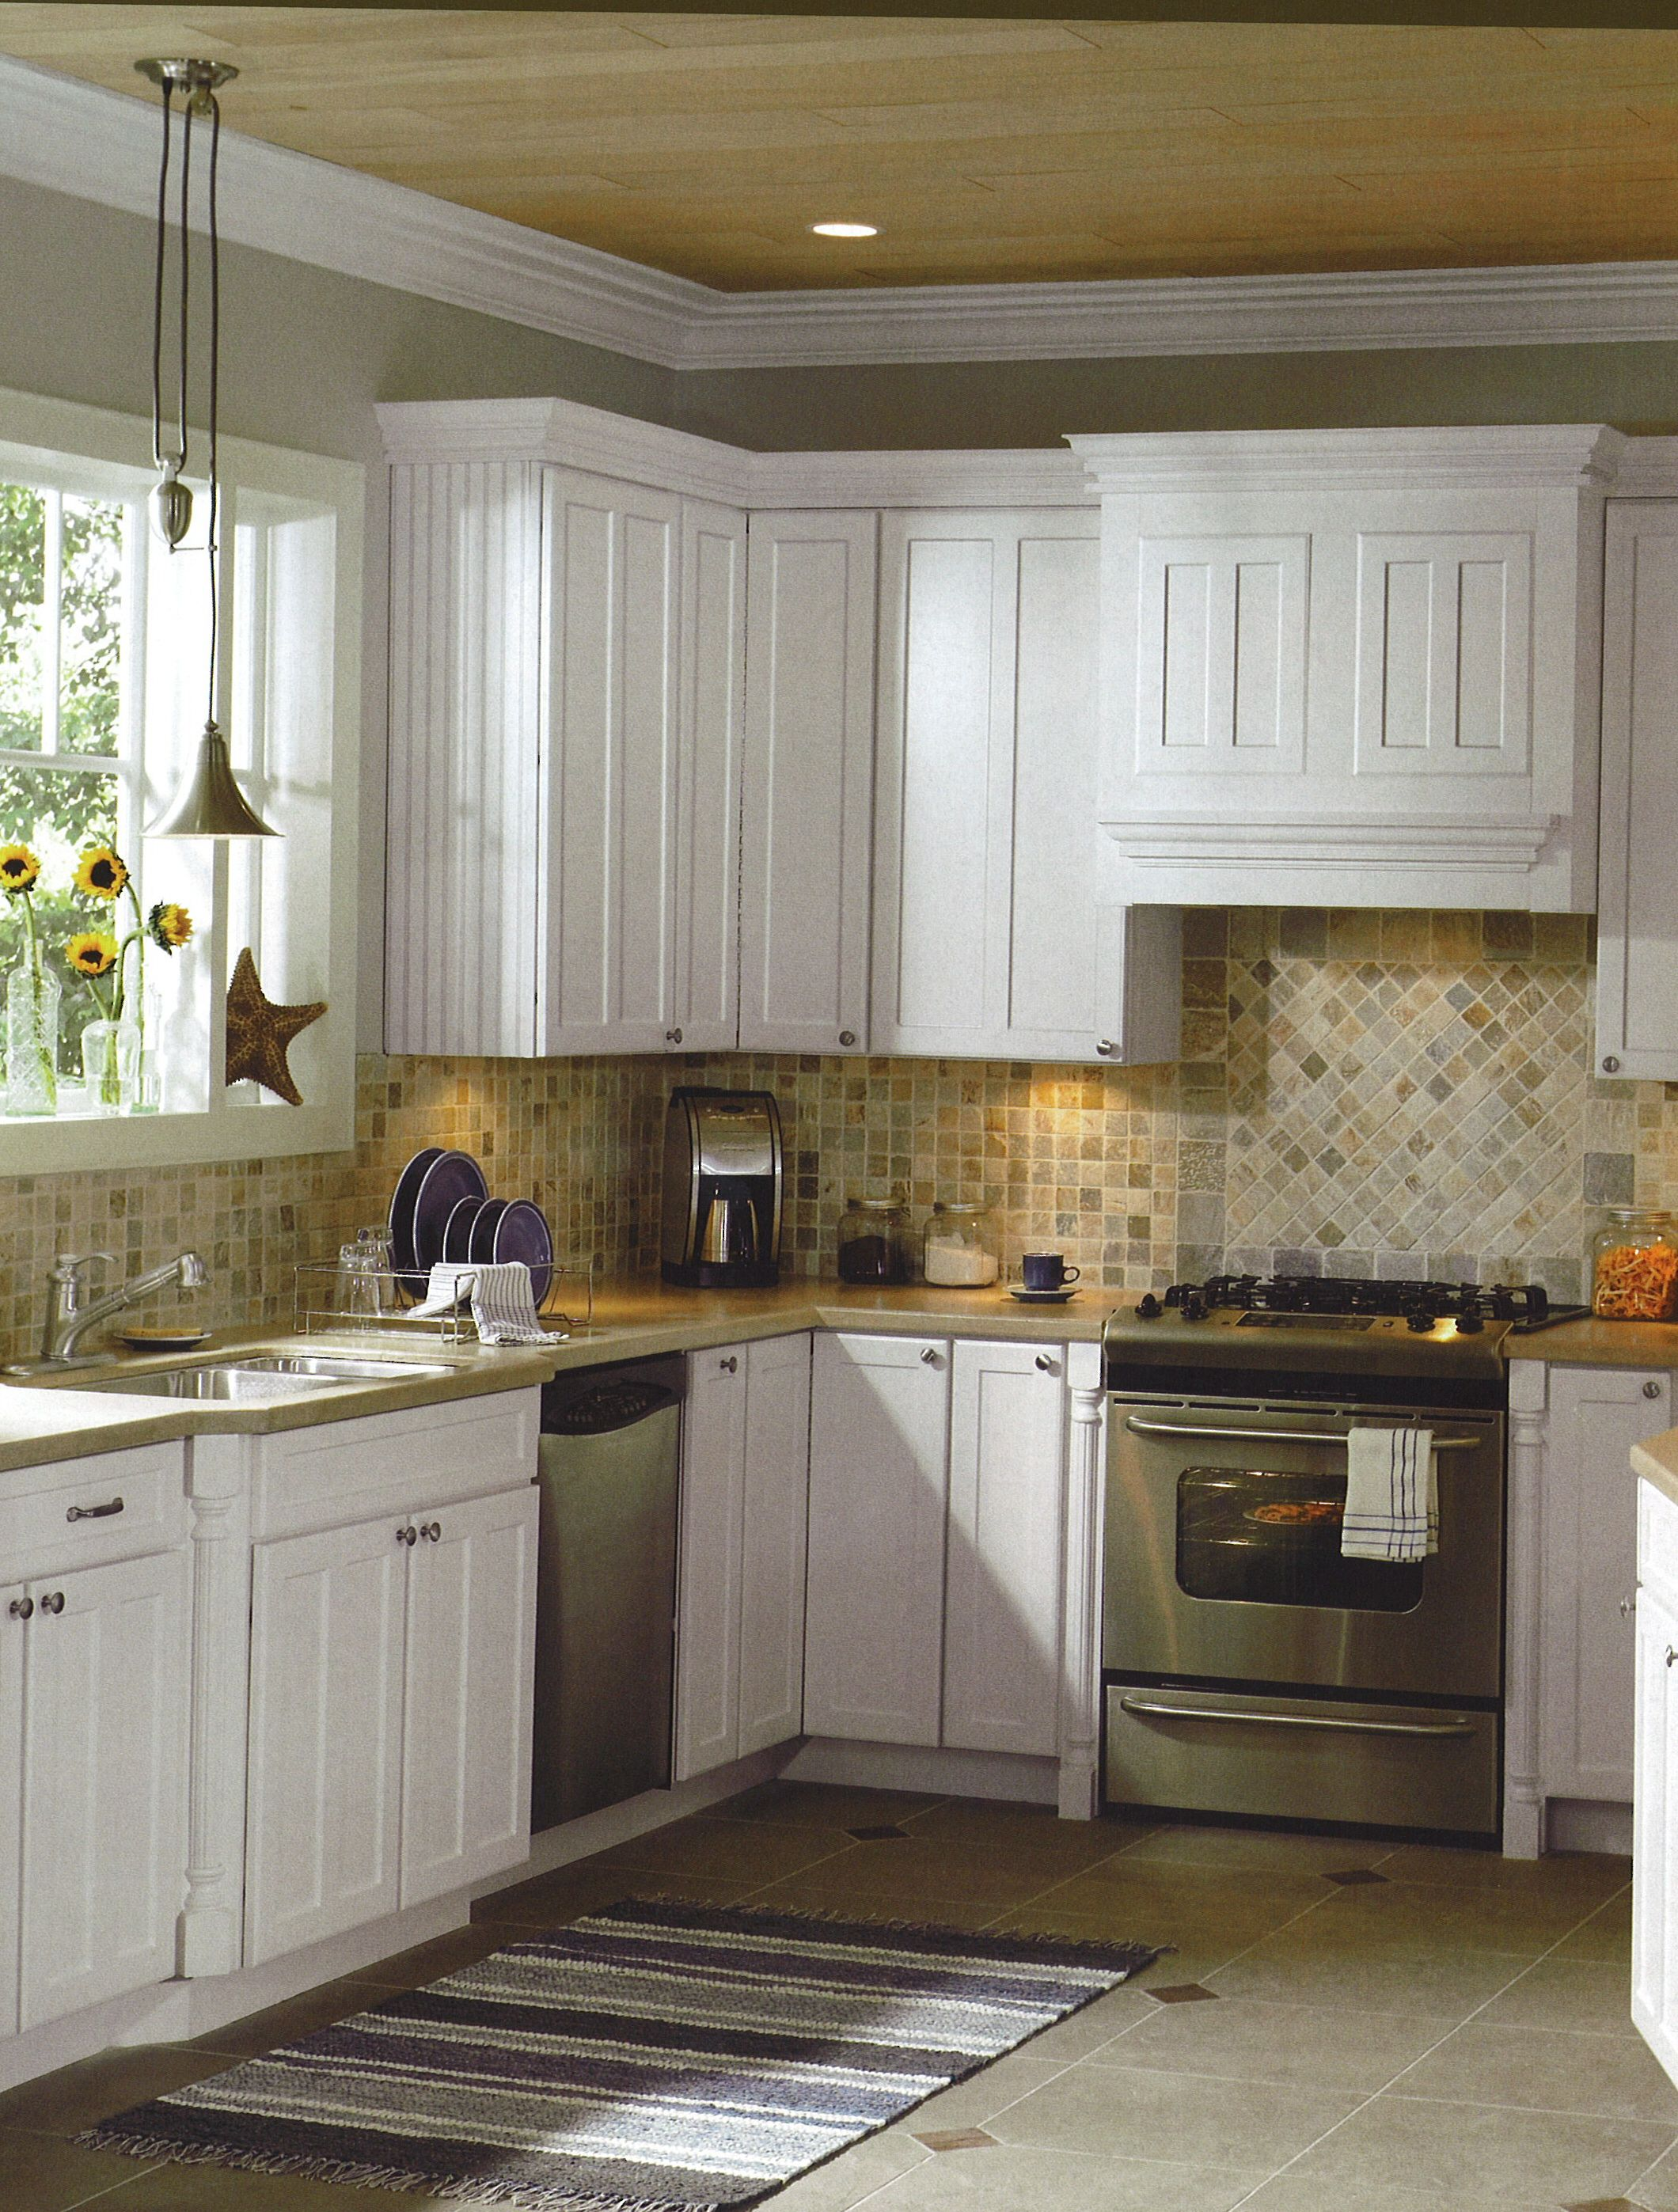 White Kitchens Best Floor And Counter Color For White Kitchen Cabinets Country